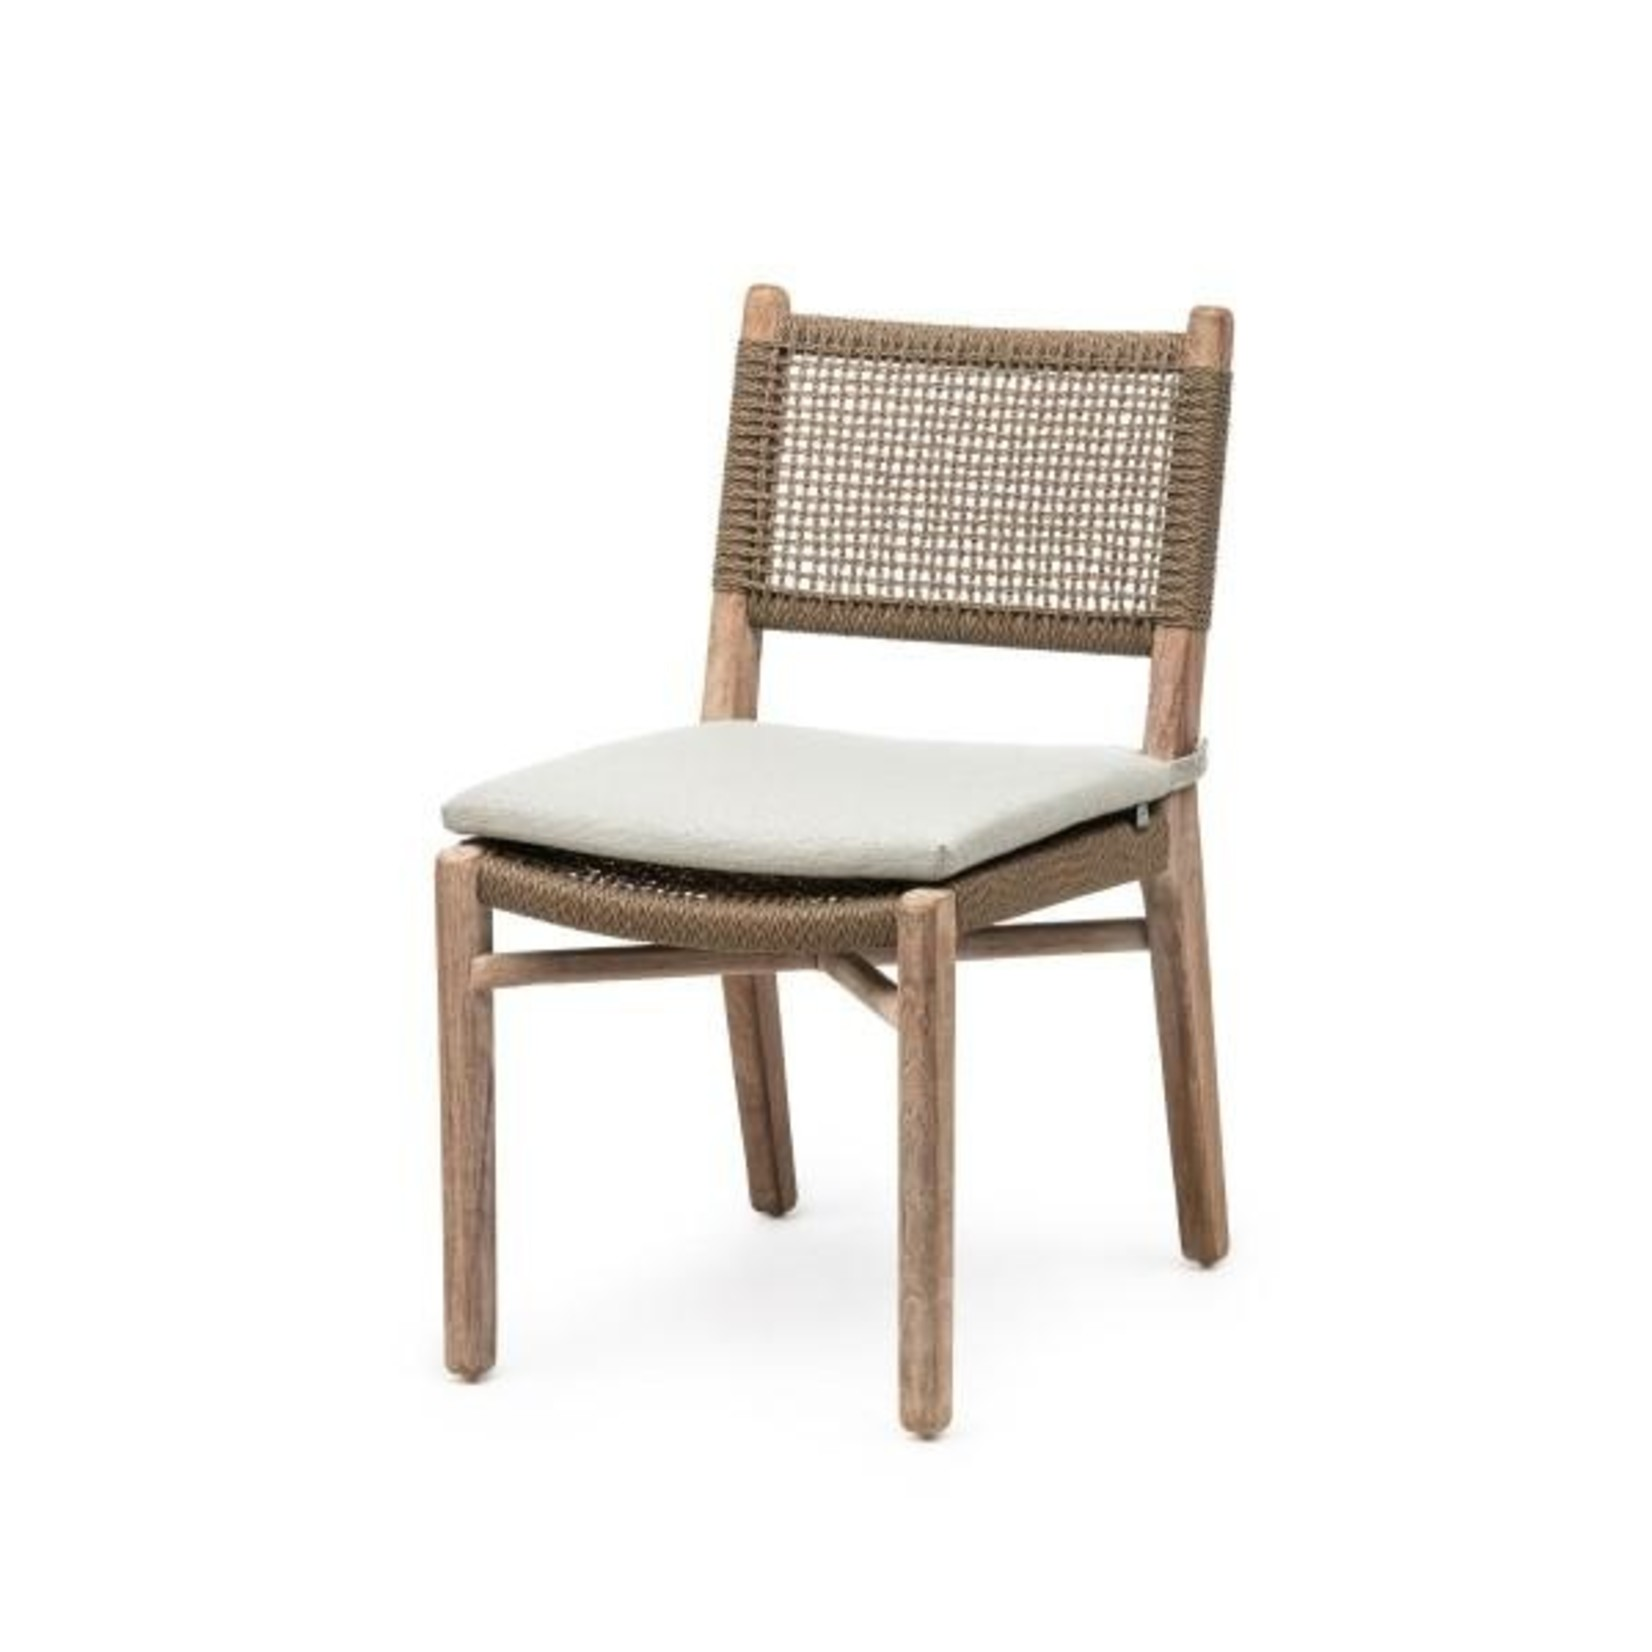 Gommaire Chair Fiona | Teak Natural Grey / PE Wicker Antique Weed